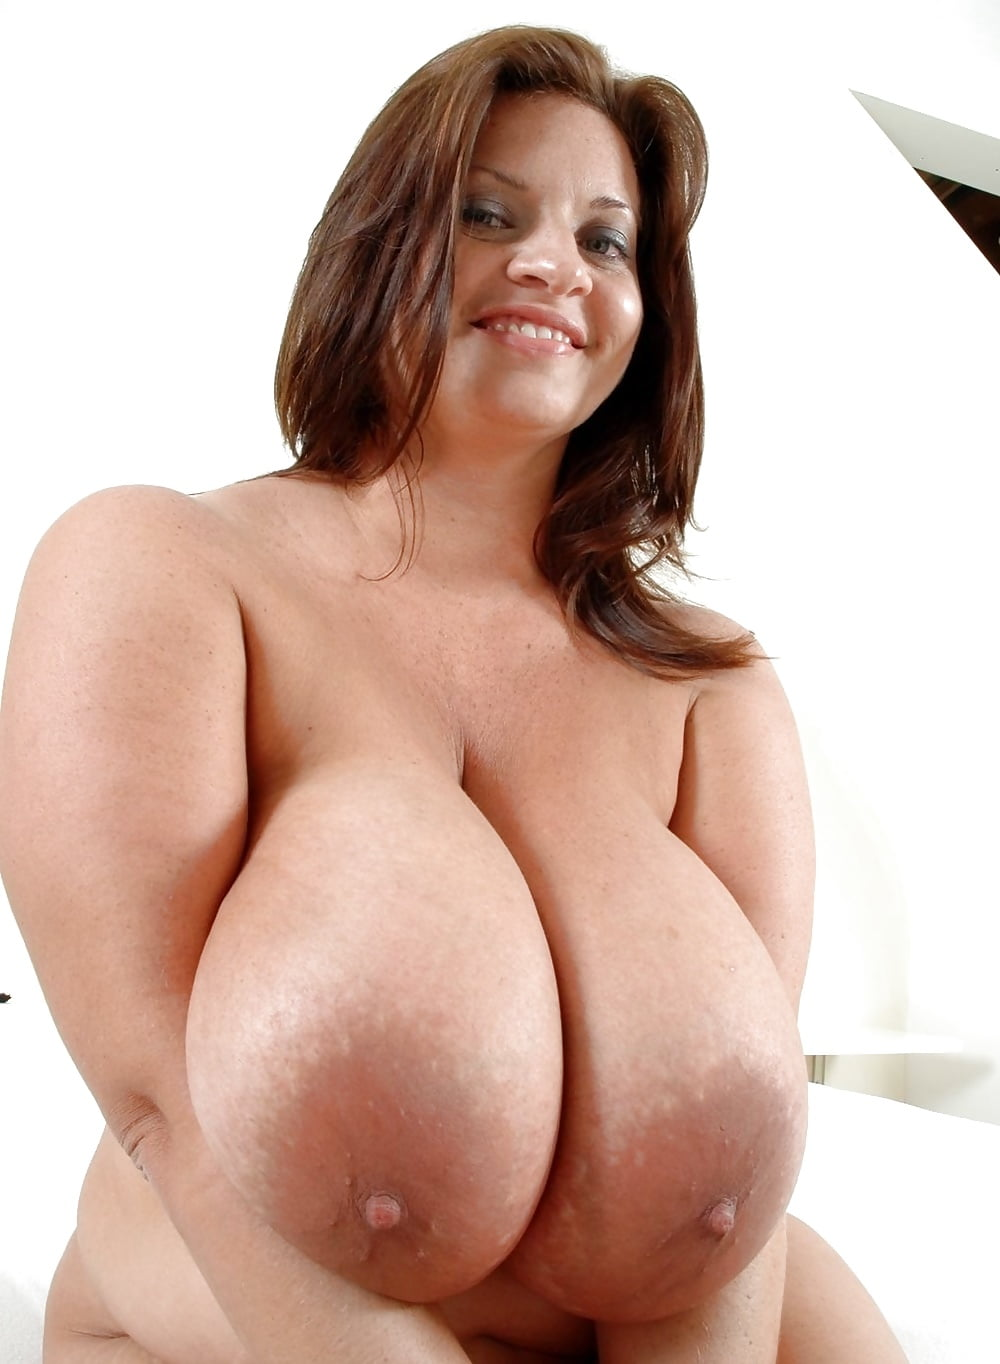 Three Beautiful Breasts And Voluptuous Girls Porn Pic